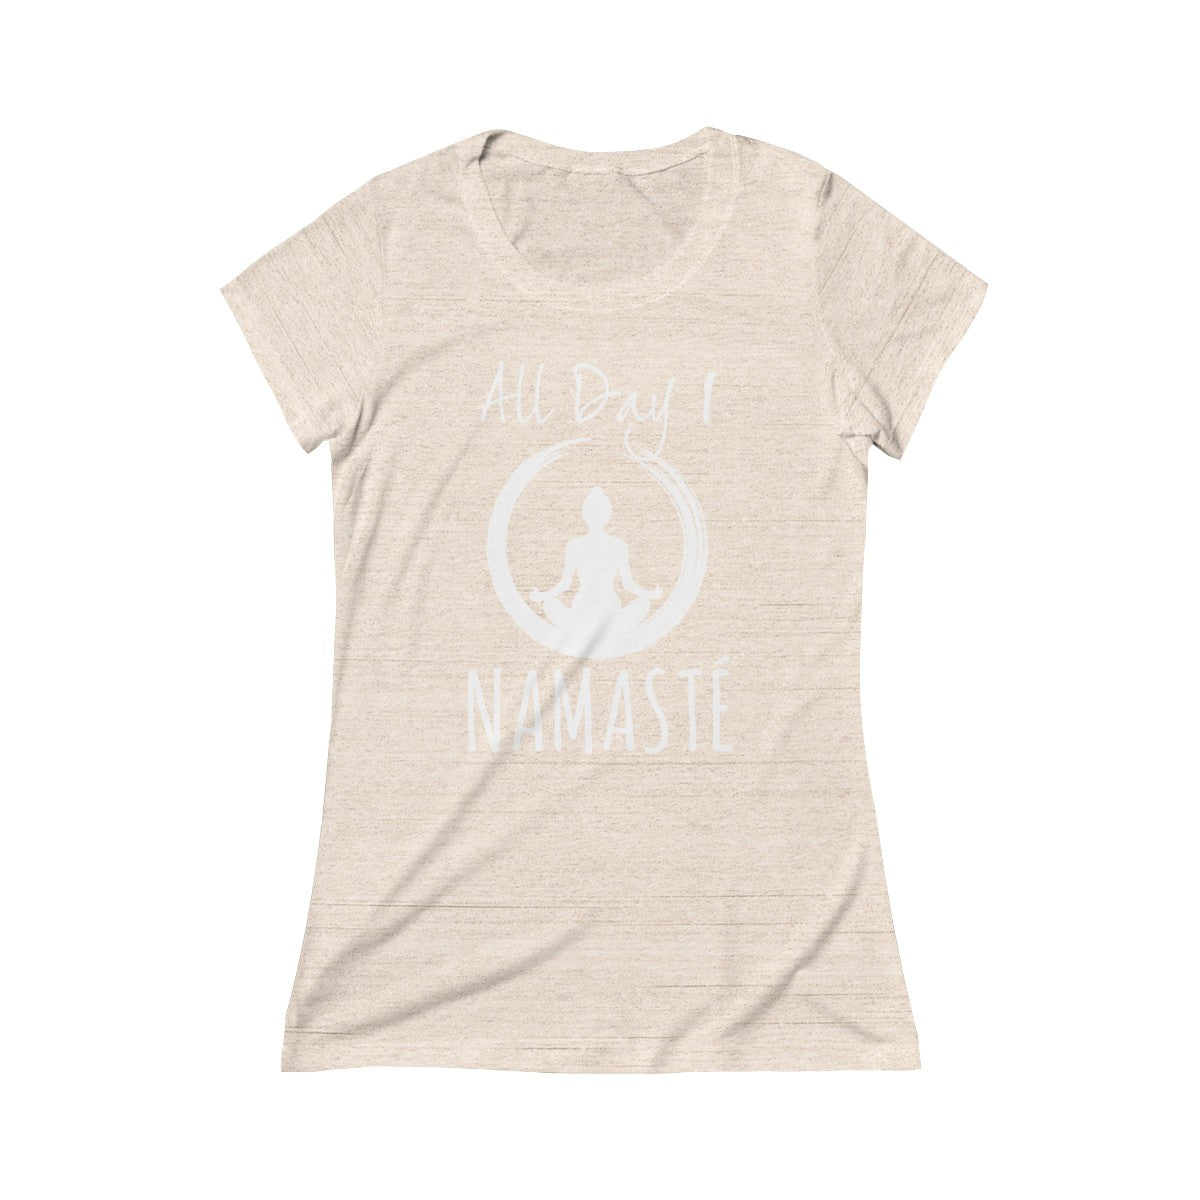 All Day I Namaste Women's Crew Tee